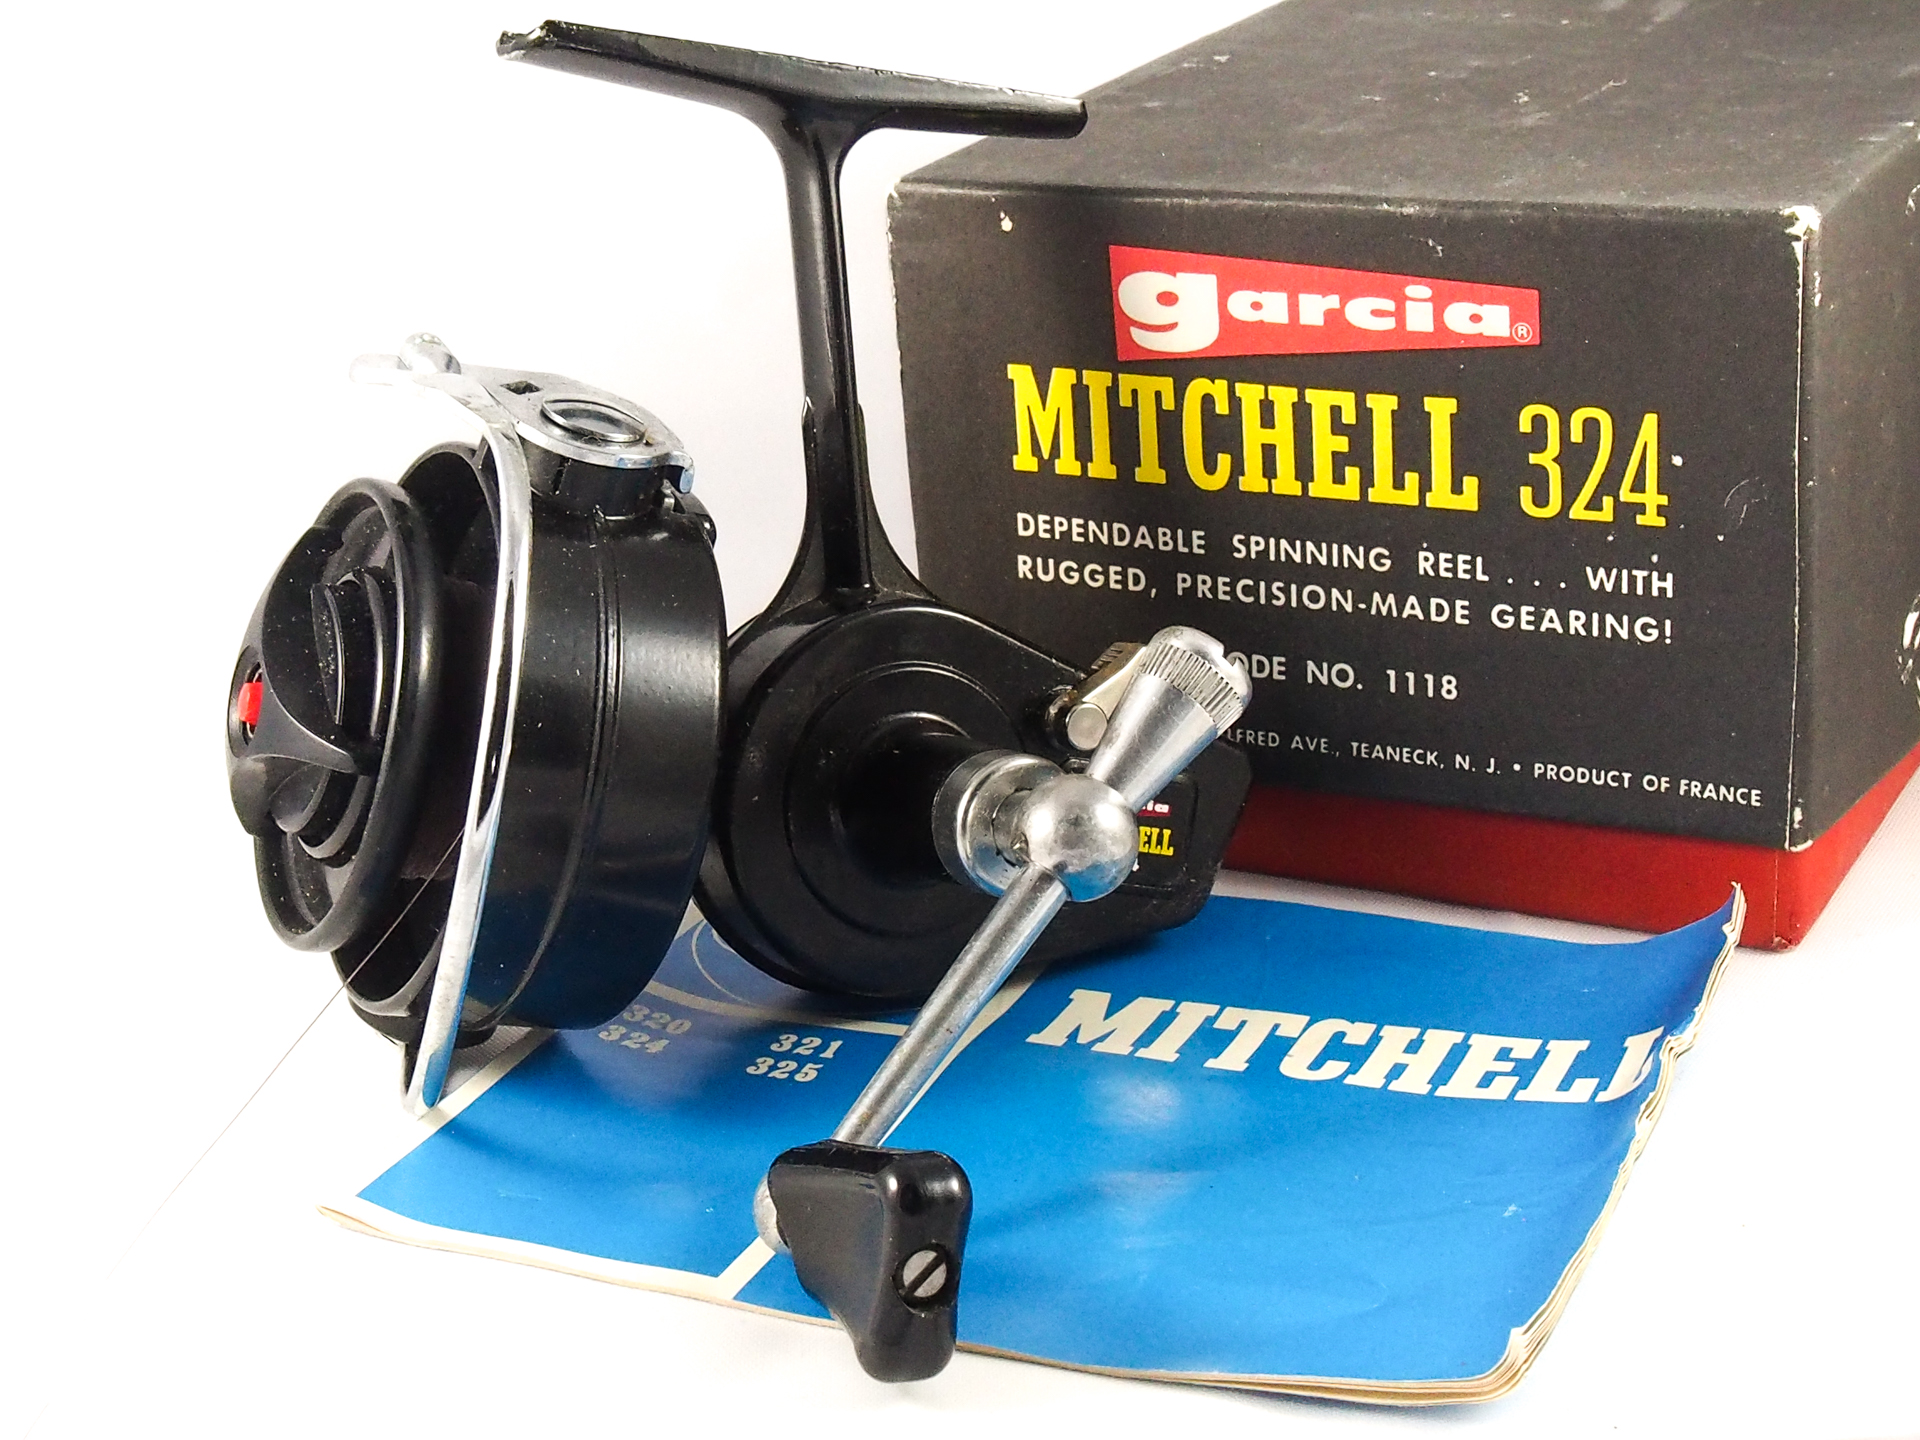 BOXED GARCIA MITCHELL 324 FIXED SPOOL REEL